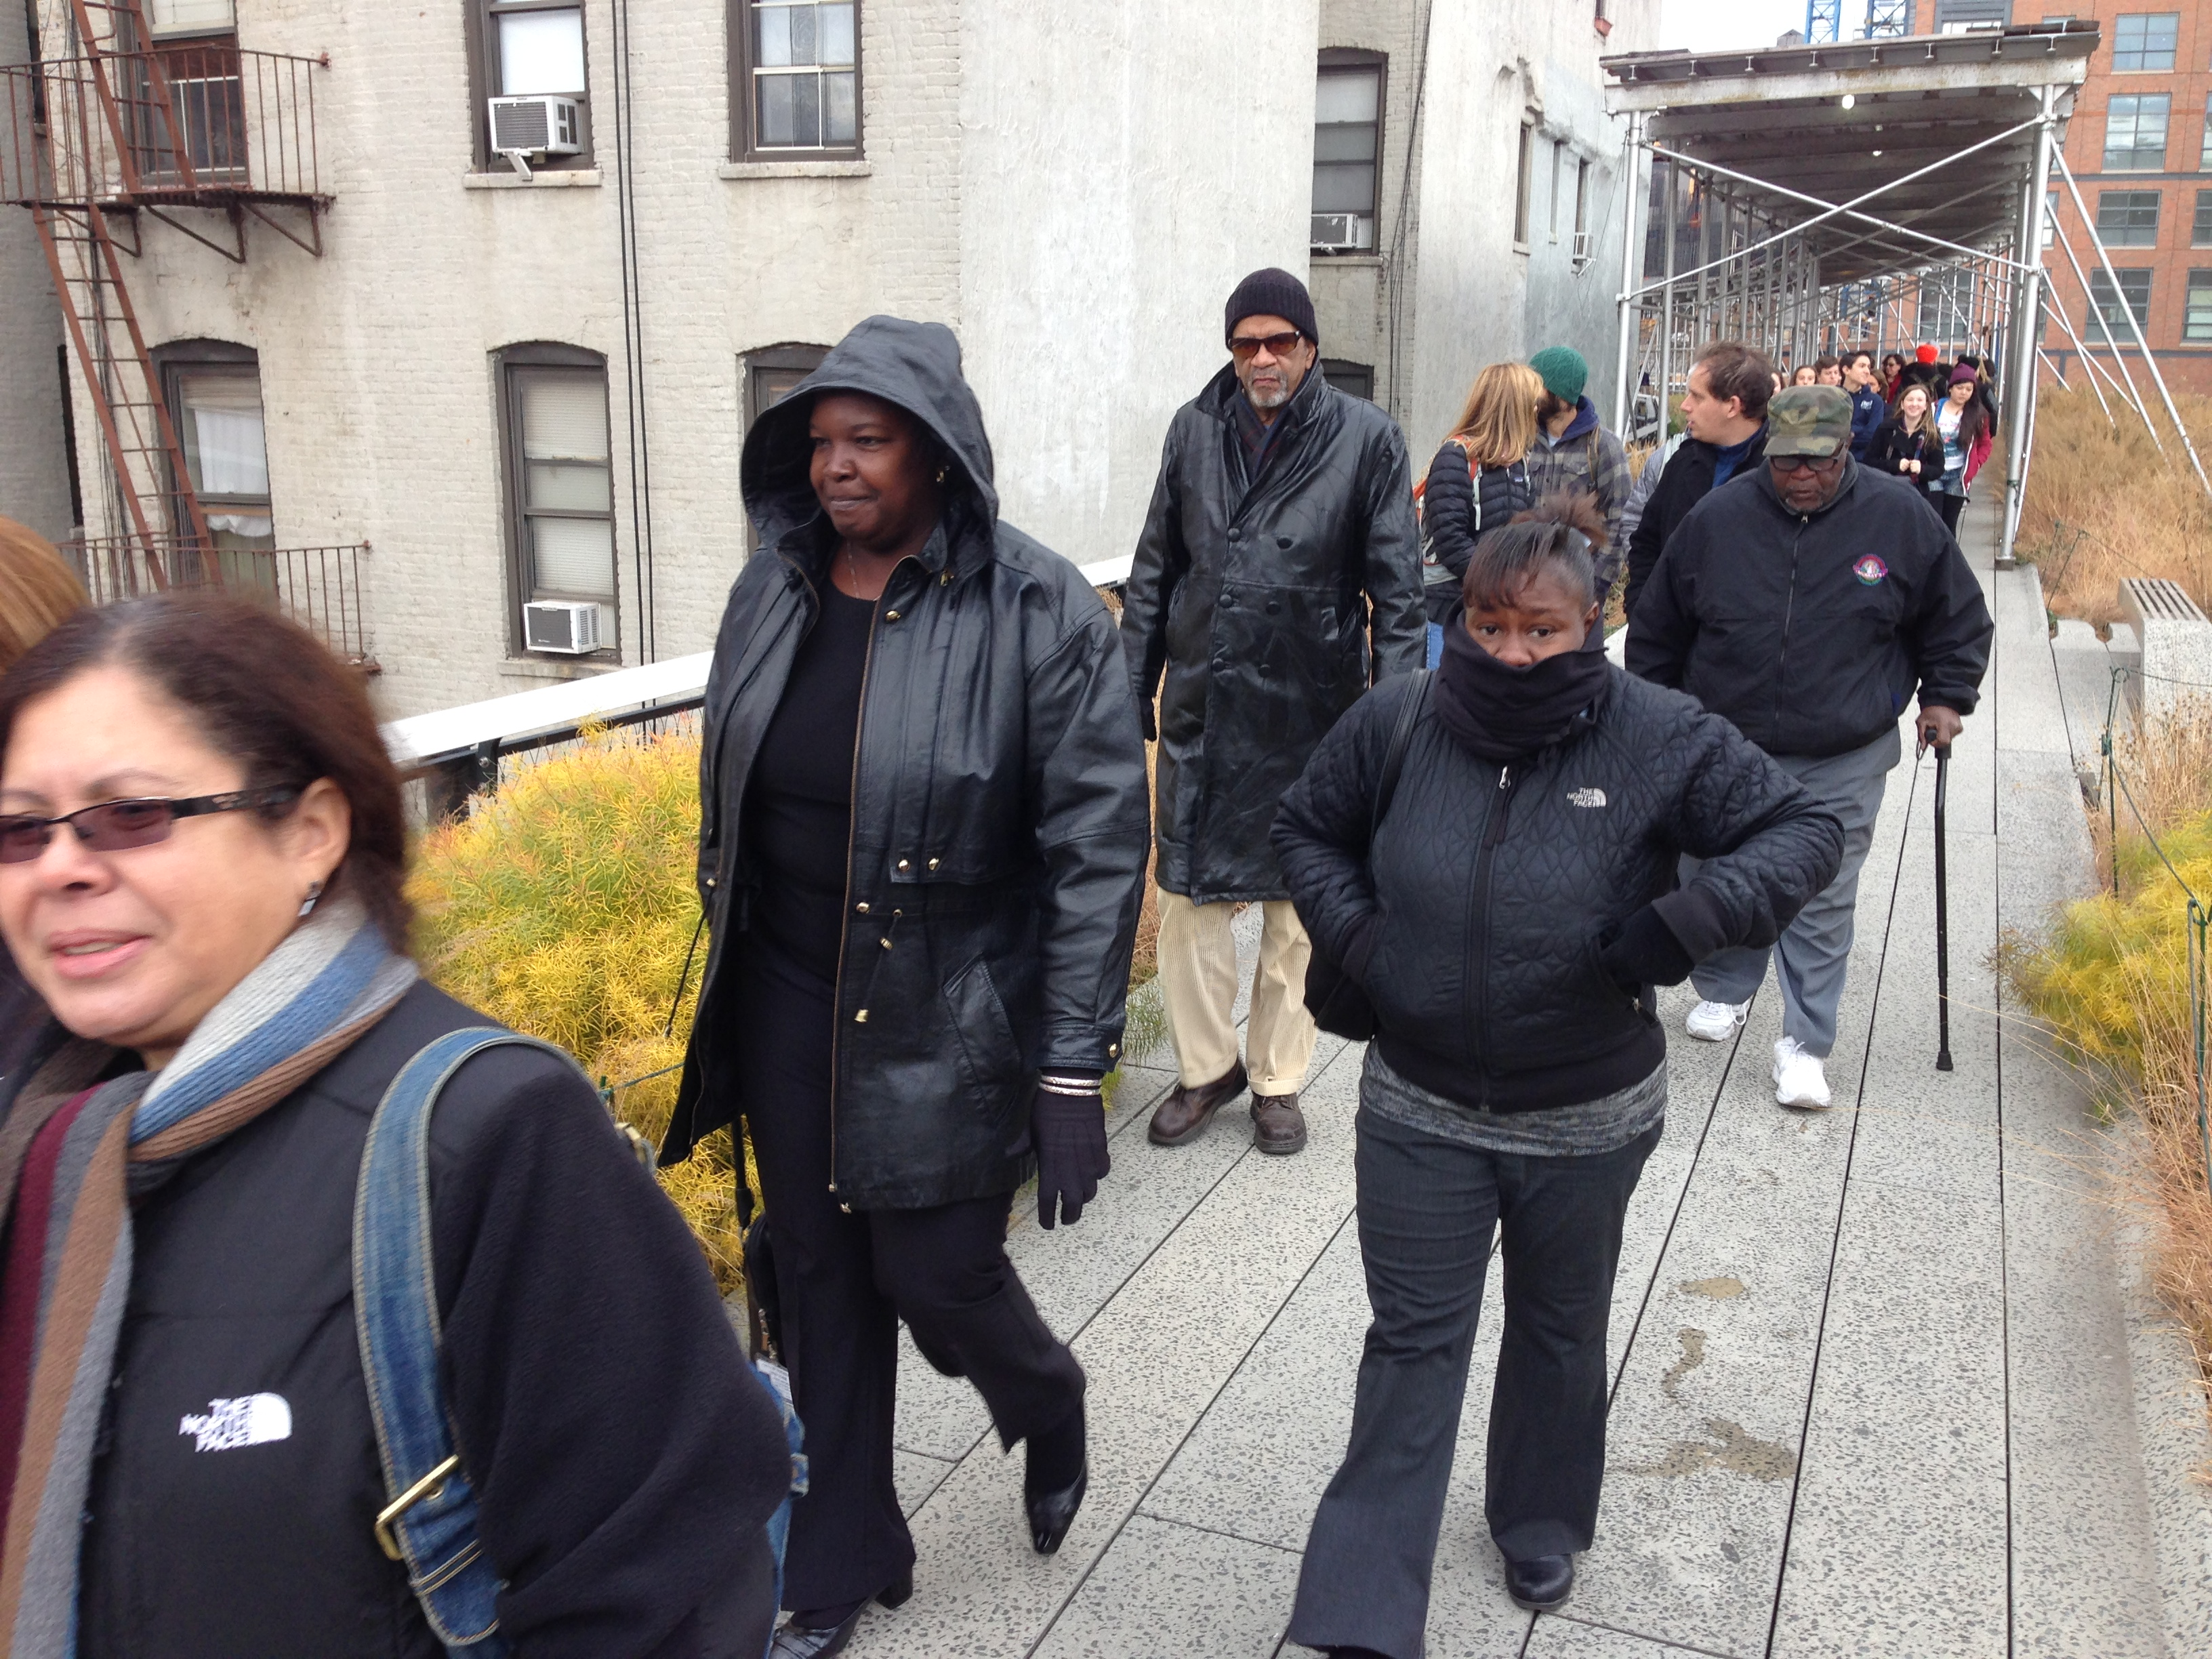 Highline-Tour_2013-11-08-12.09.26